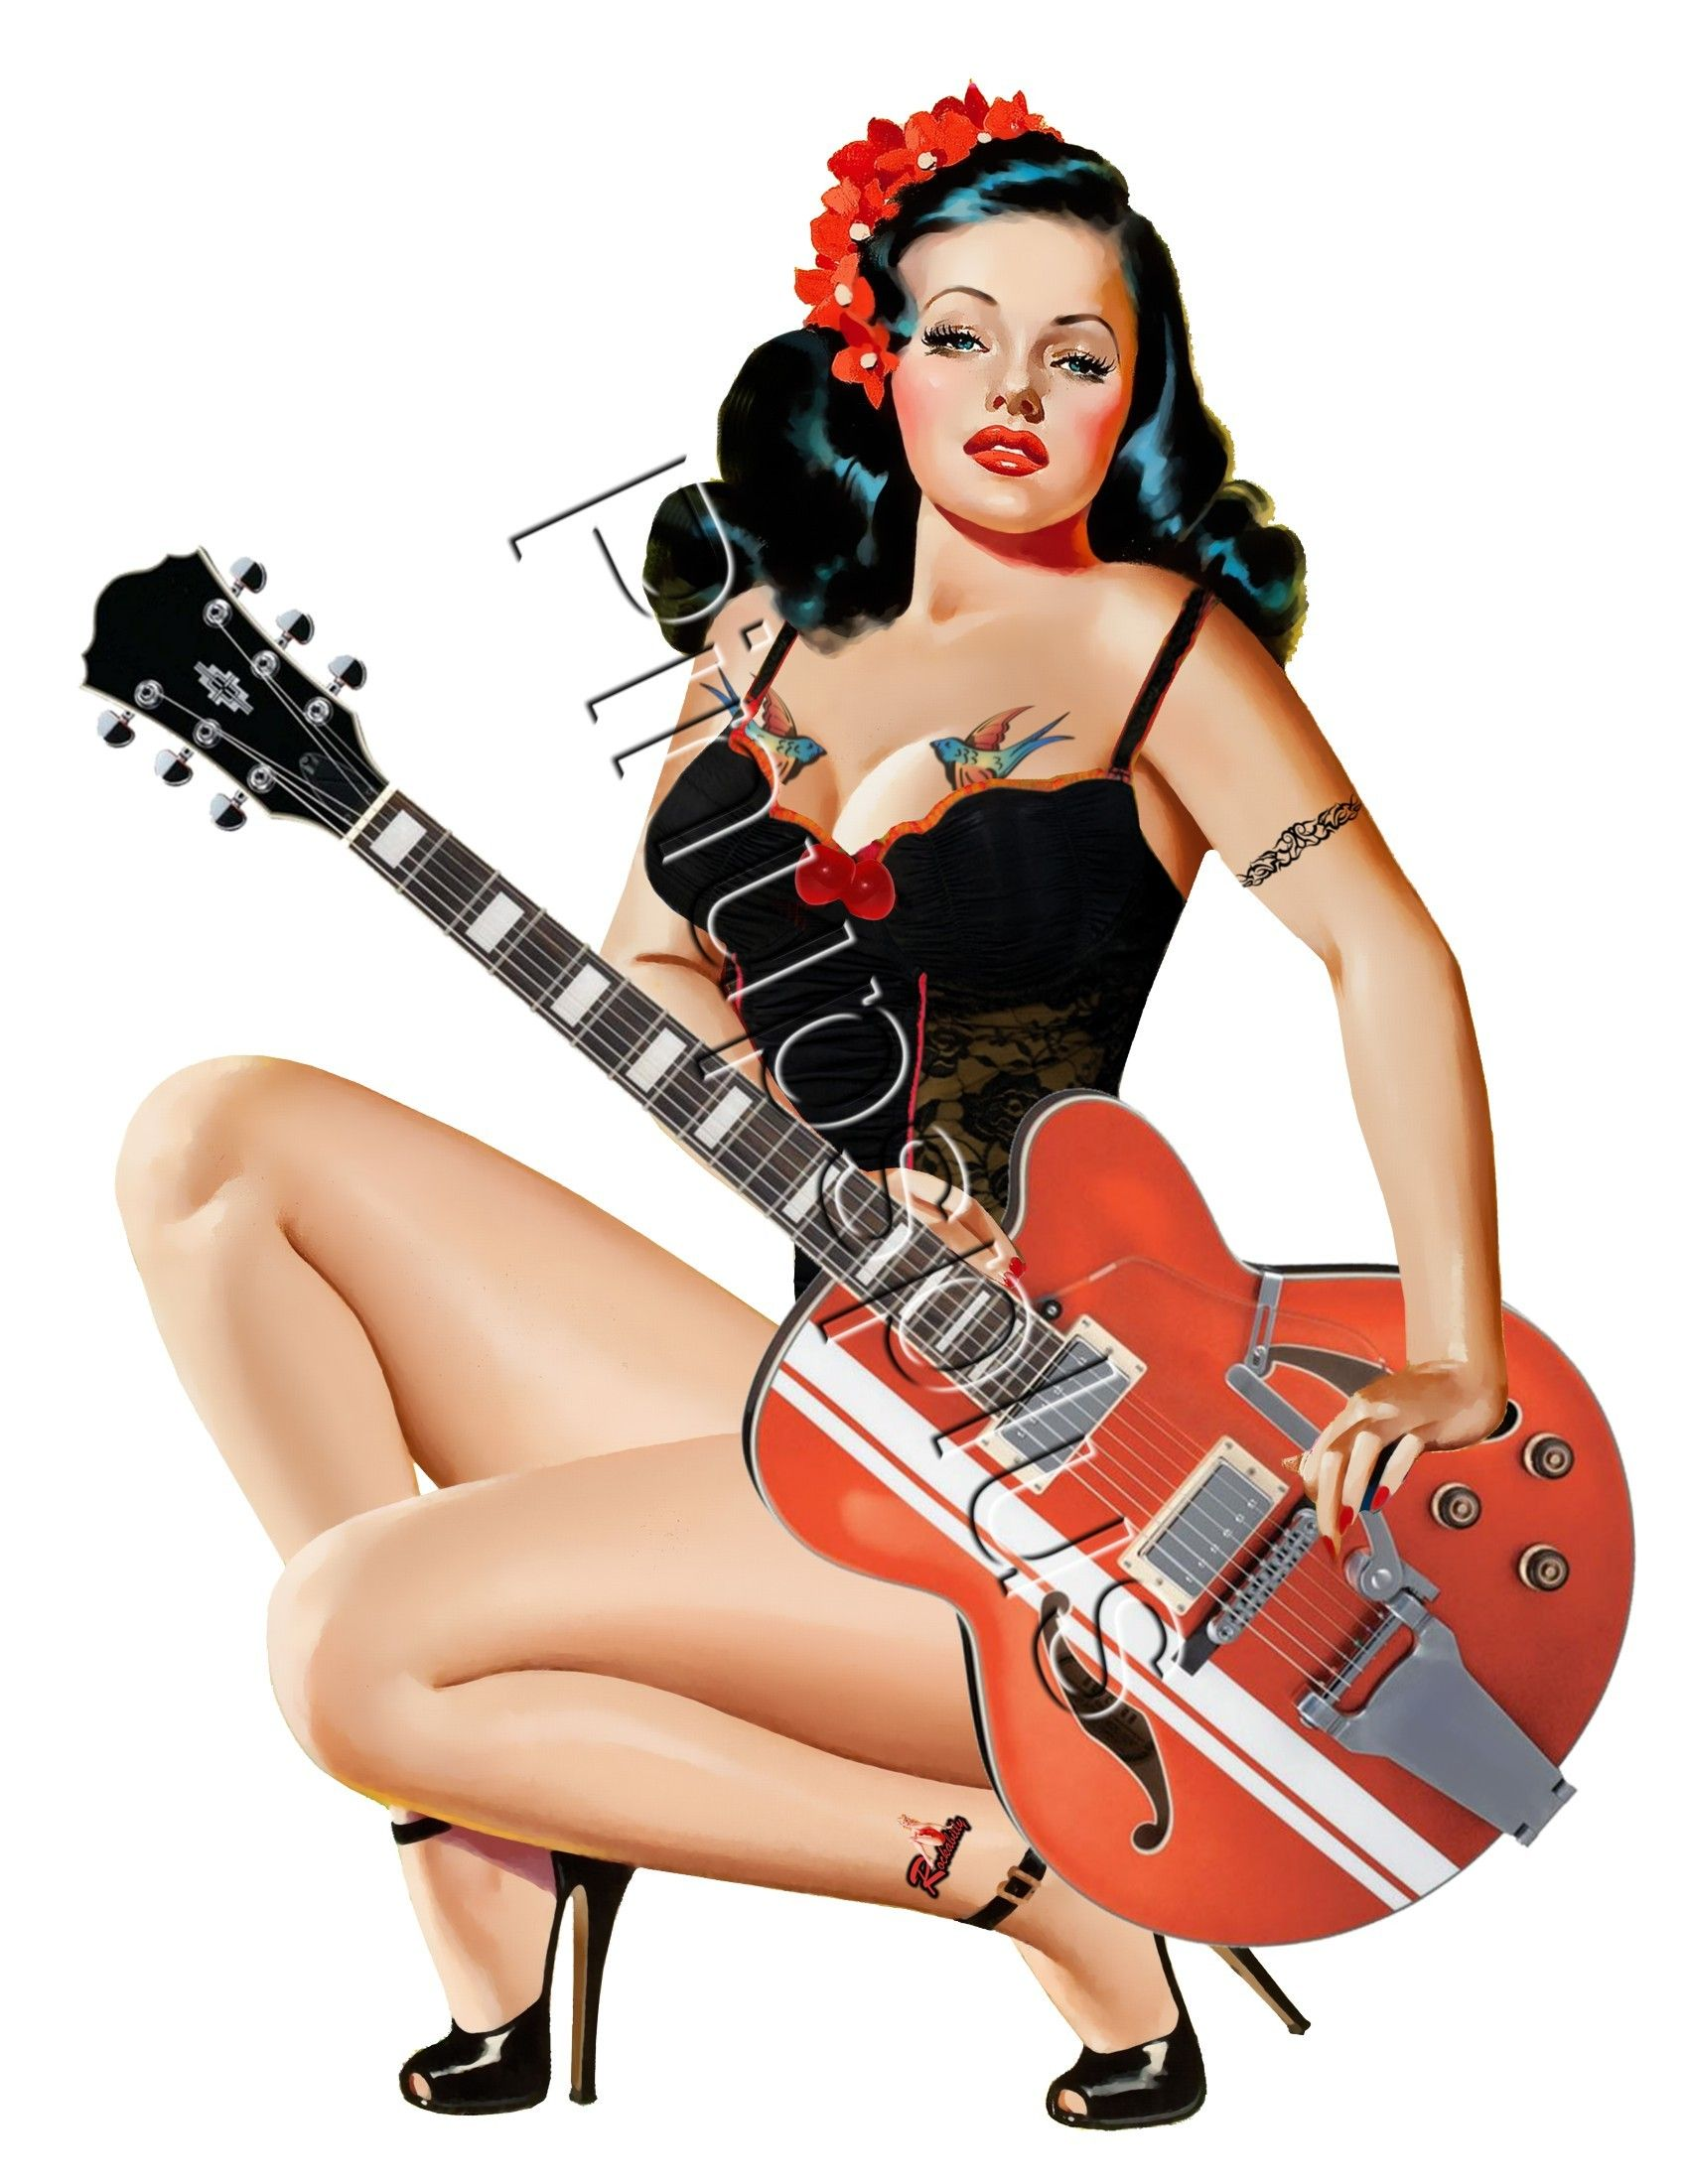 sexy pinup rockabilly guitar tattooed girl waterslide decal s678 s678 pin ups plus. Black Bedroom Furniture Sets. Home Design Ideas